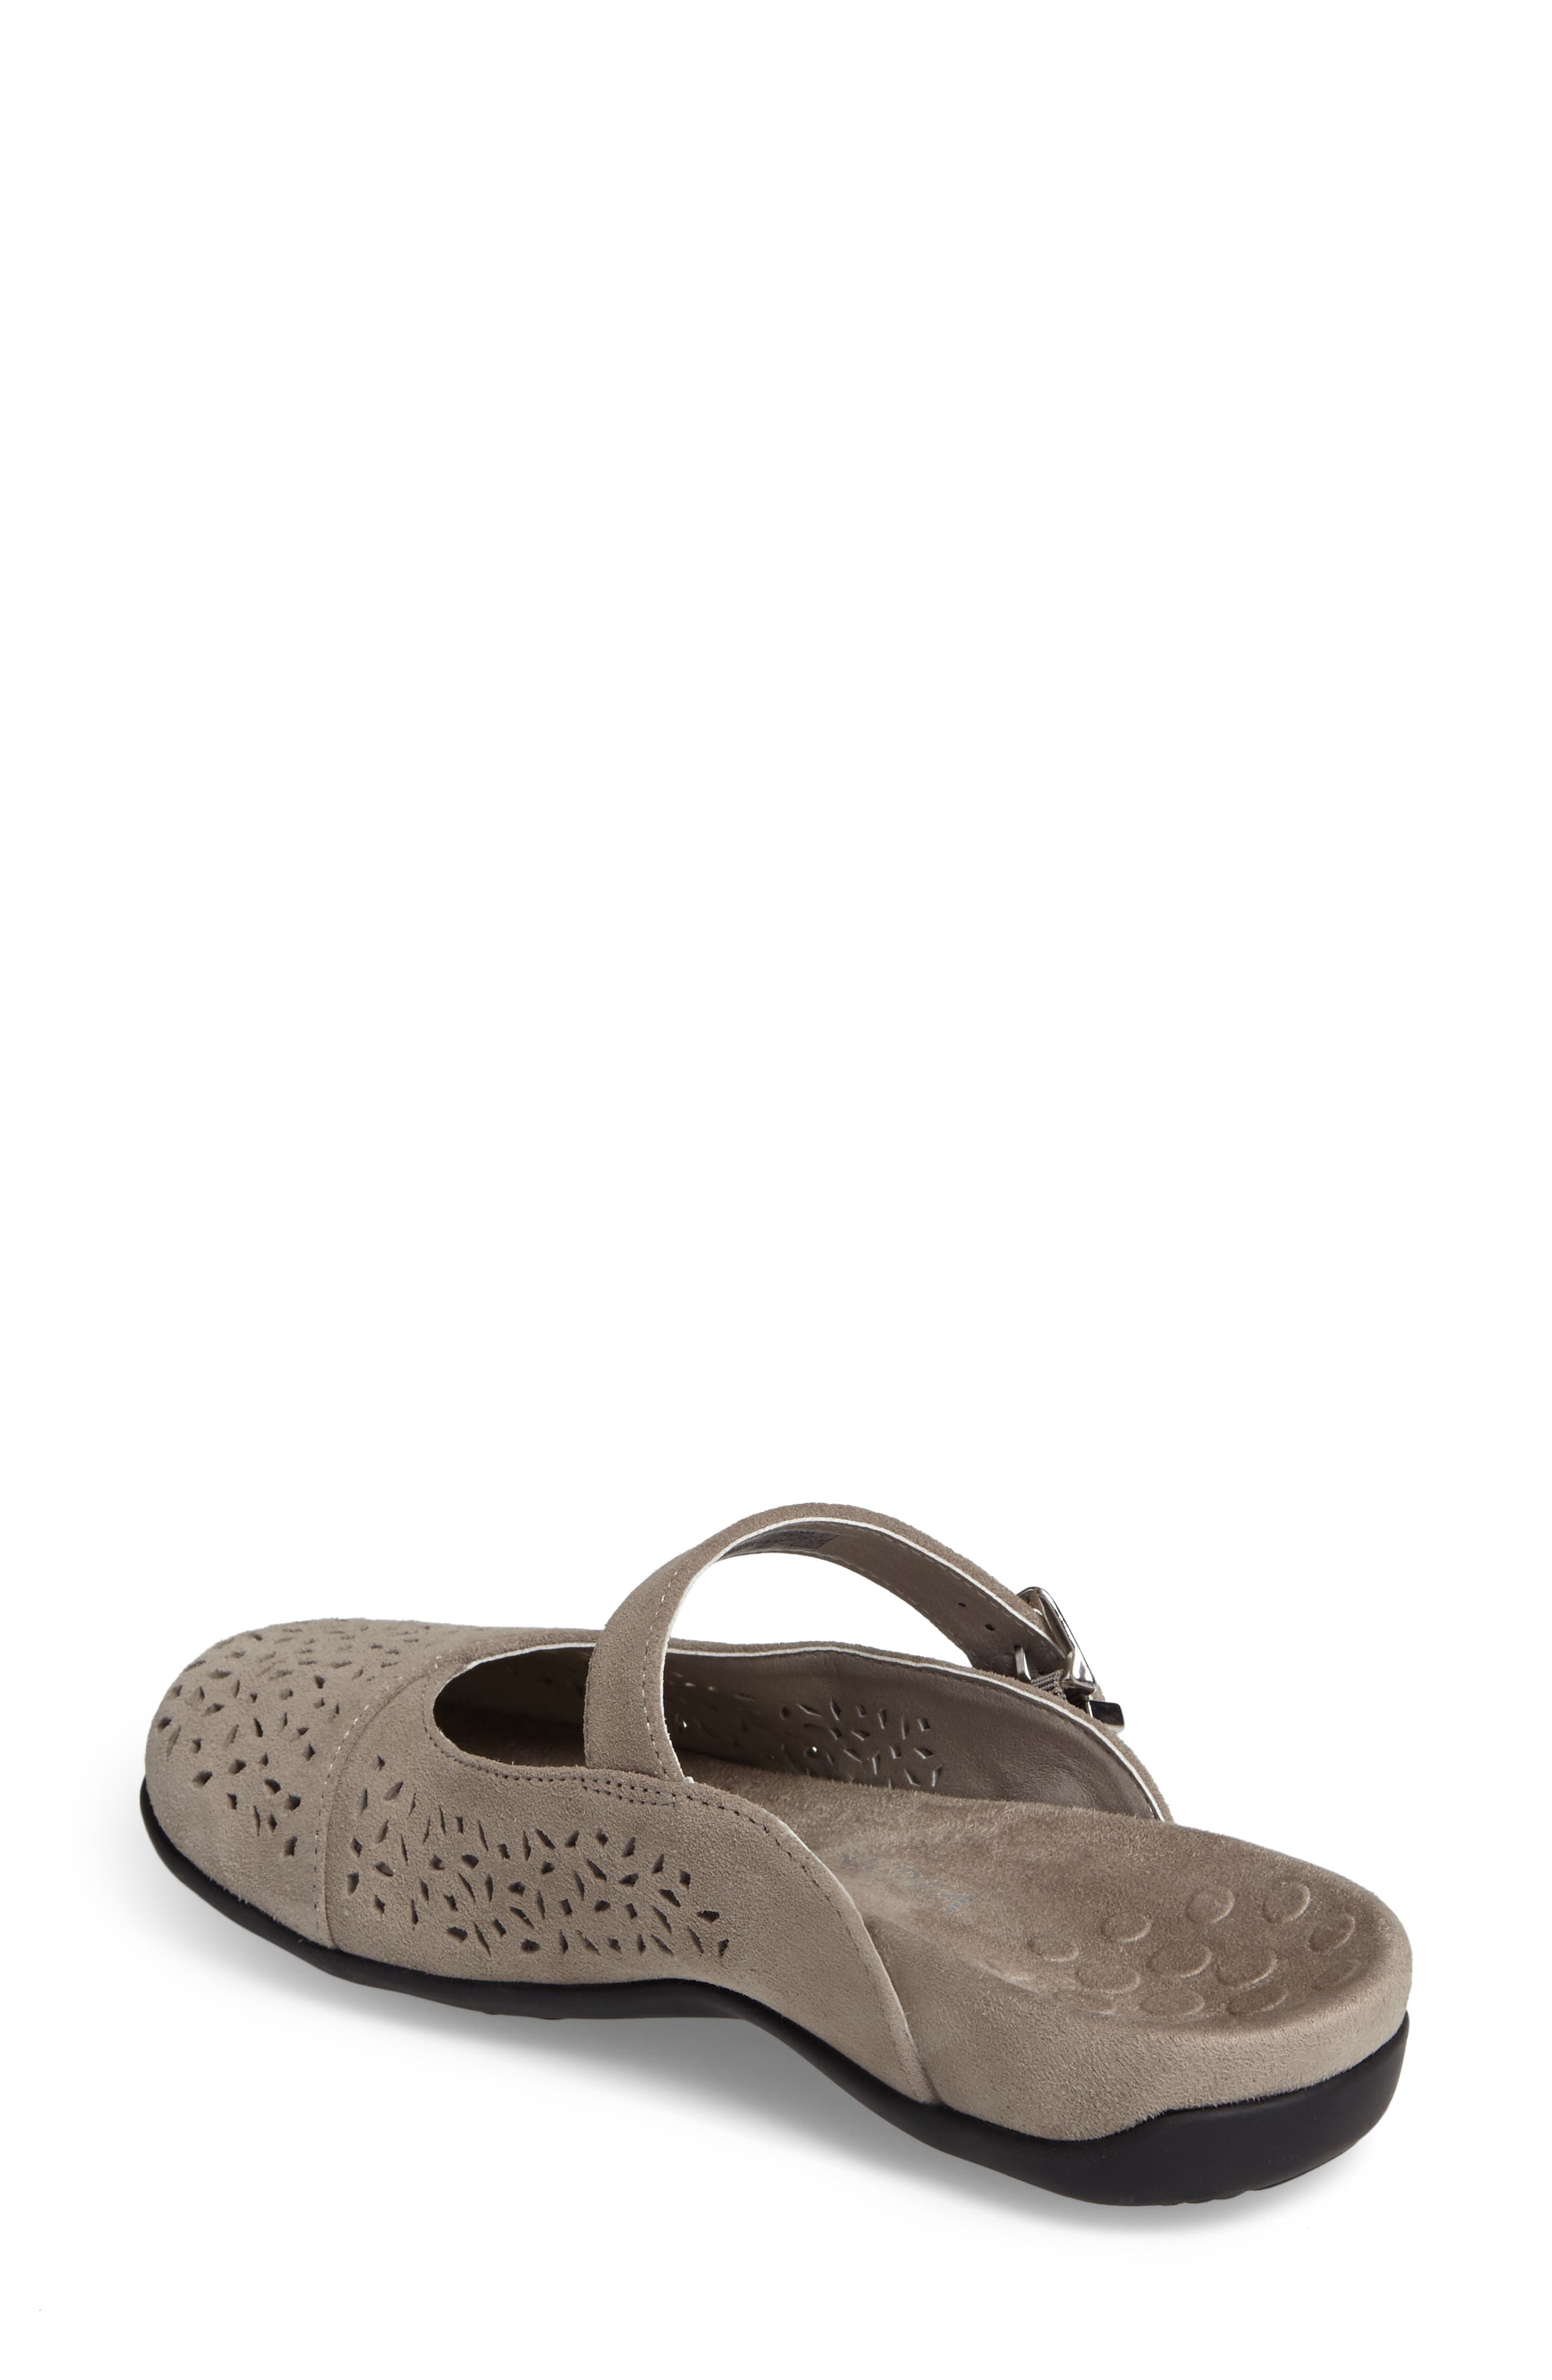 Rest Lidia Perforated Mary Jane Mule,                             Alternate thumbnail 2, color,                             Grey Suede